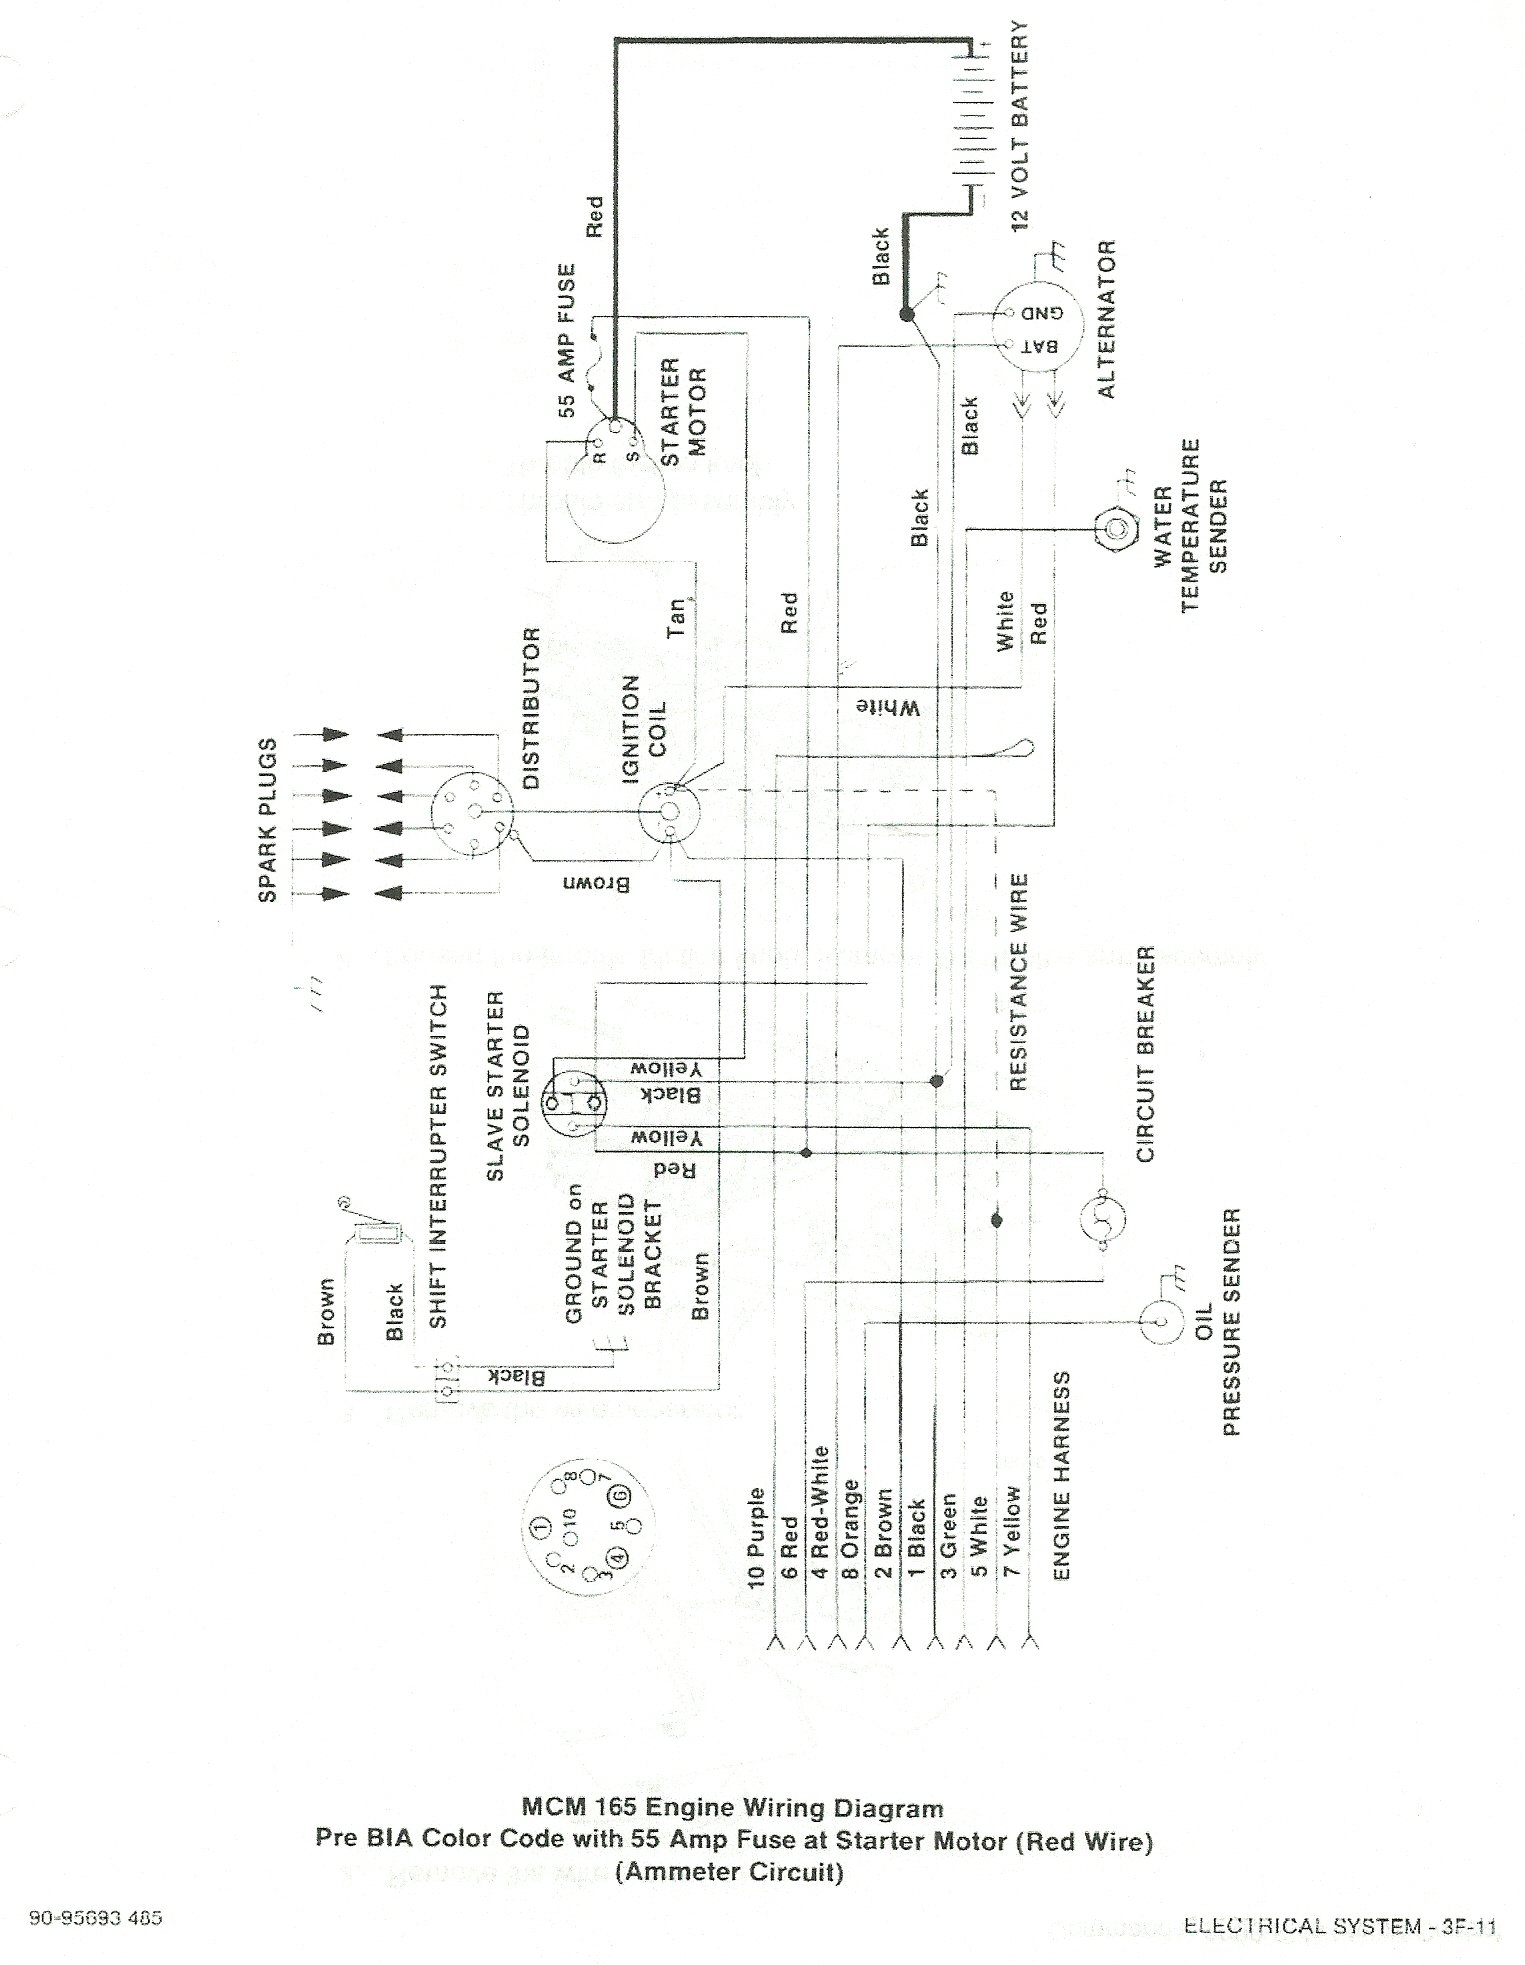 2013-07-18_225332_scan0005  Position Marine Battery Switch Wiring Diagram on marine charger wiring diagram, marine dual battery switch diagram, marine boat wiring diagram,